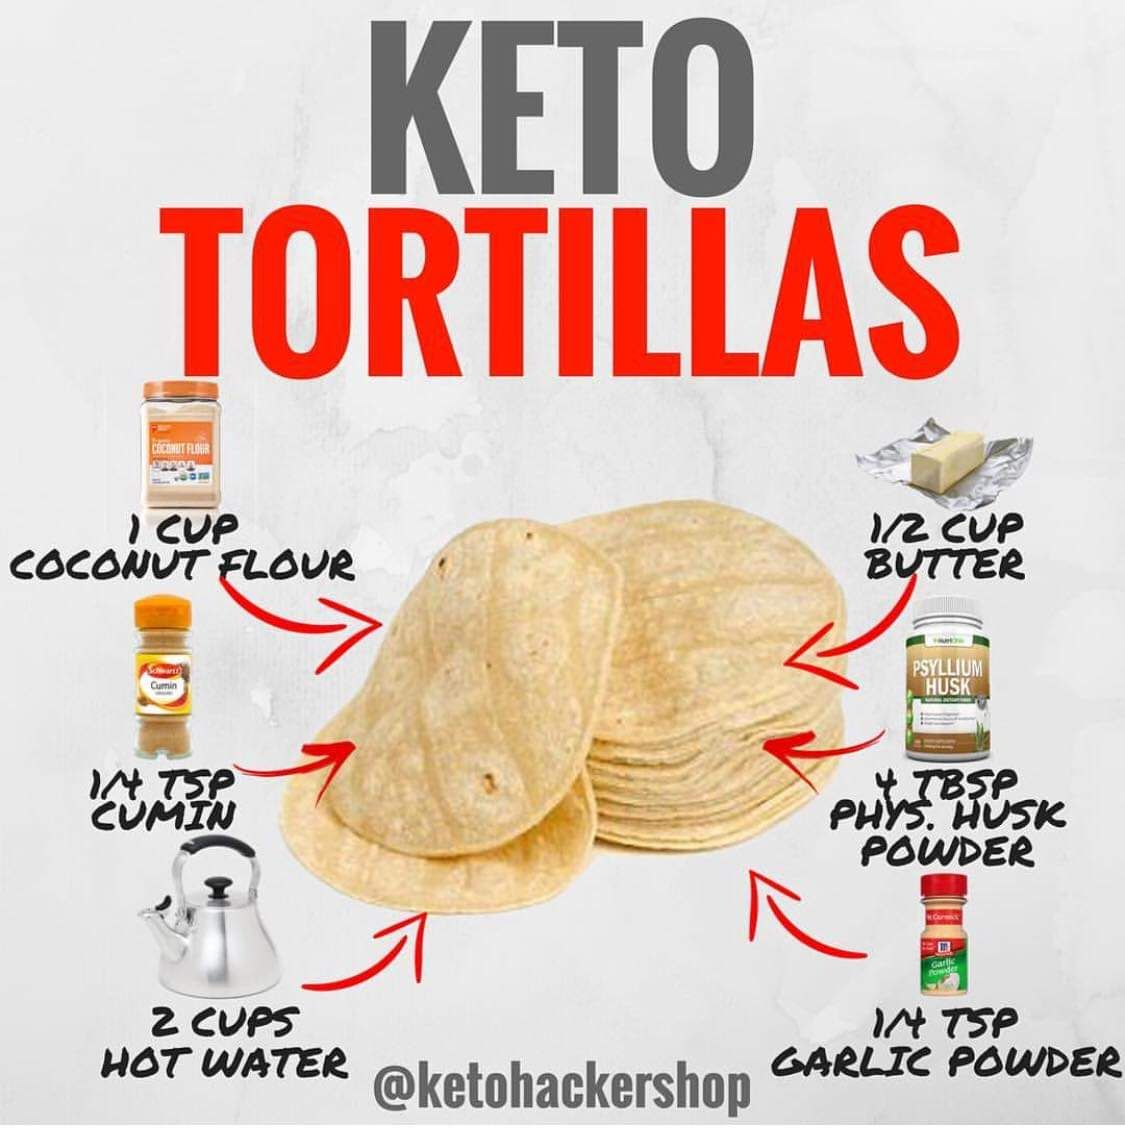 Tips And Tricks To Encourage Better Nutrition: Keto Tortillas. Keto Recipe. Keto Hacks. Keto Tips And